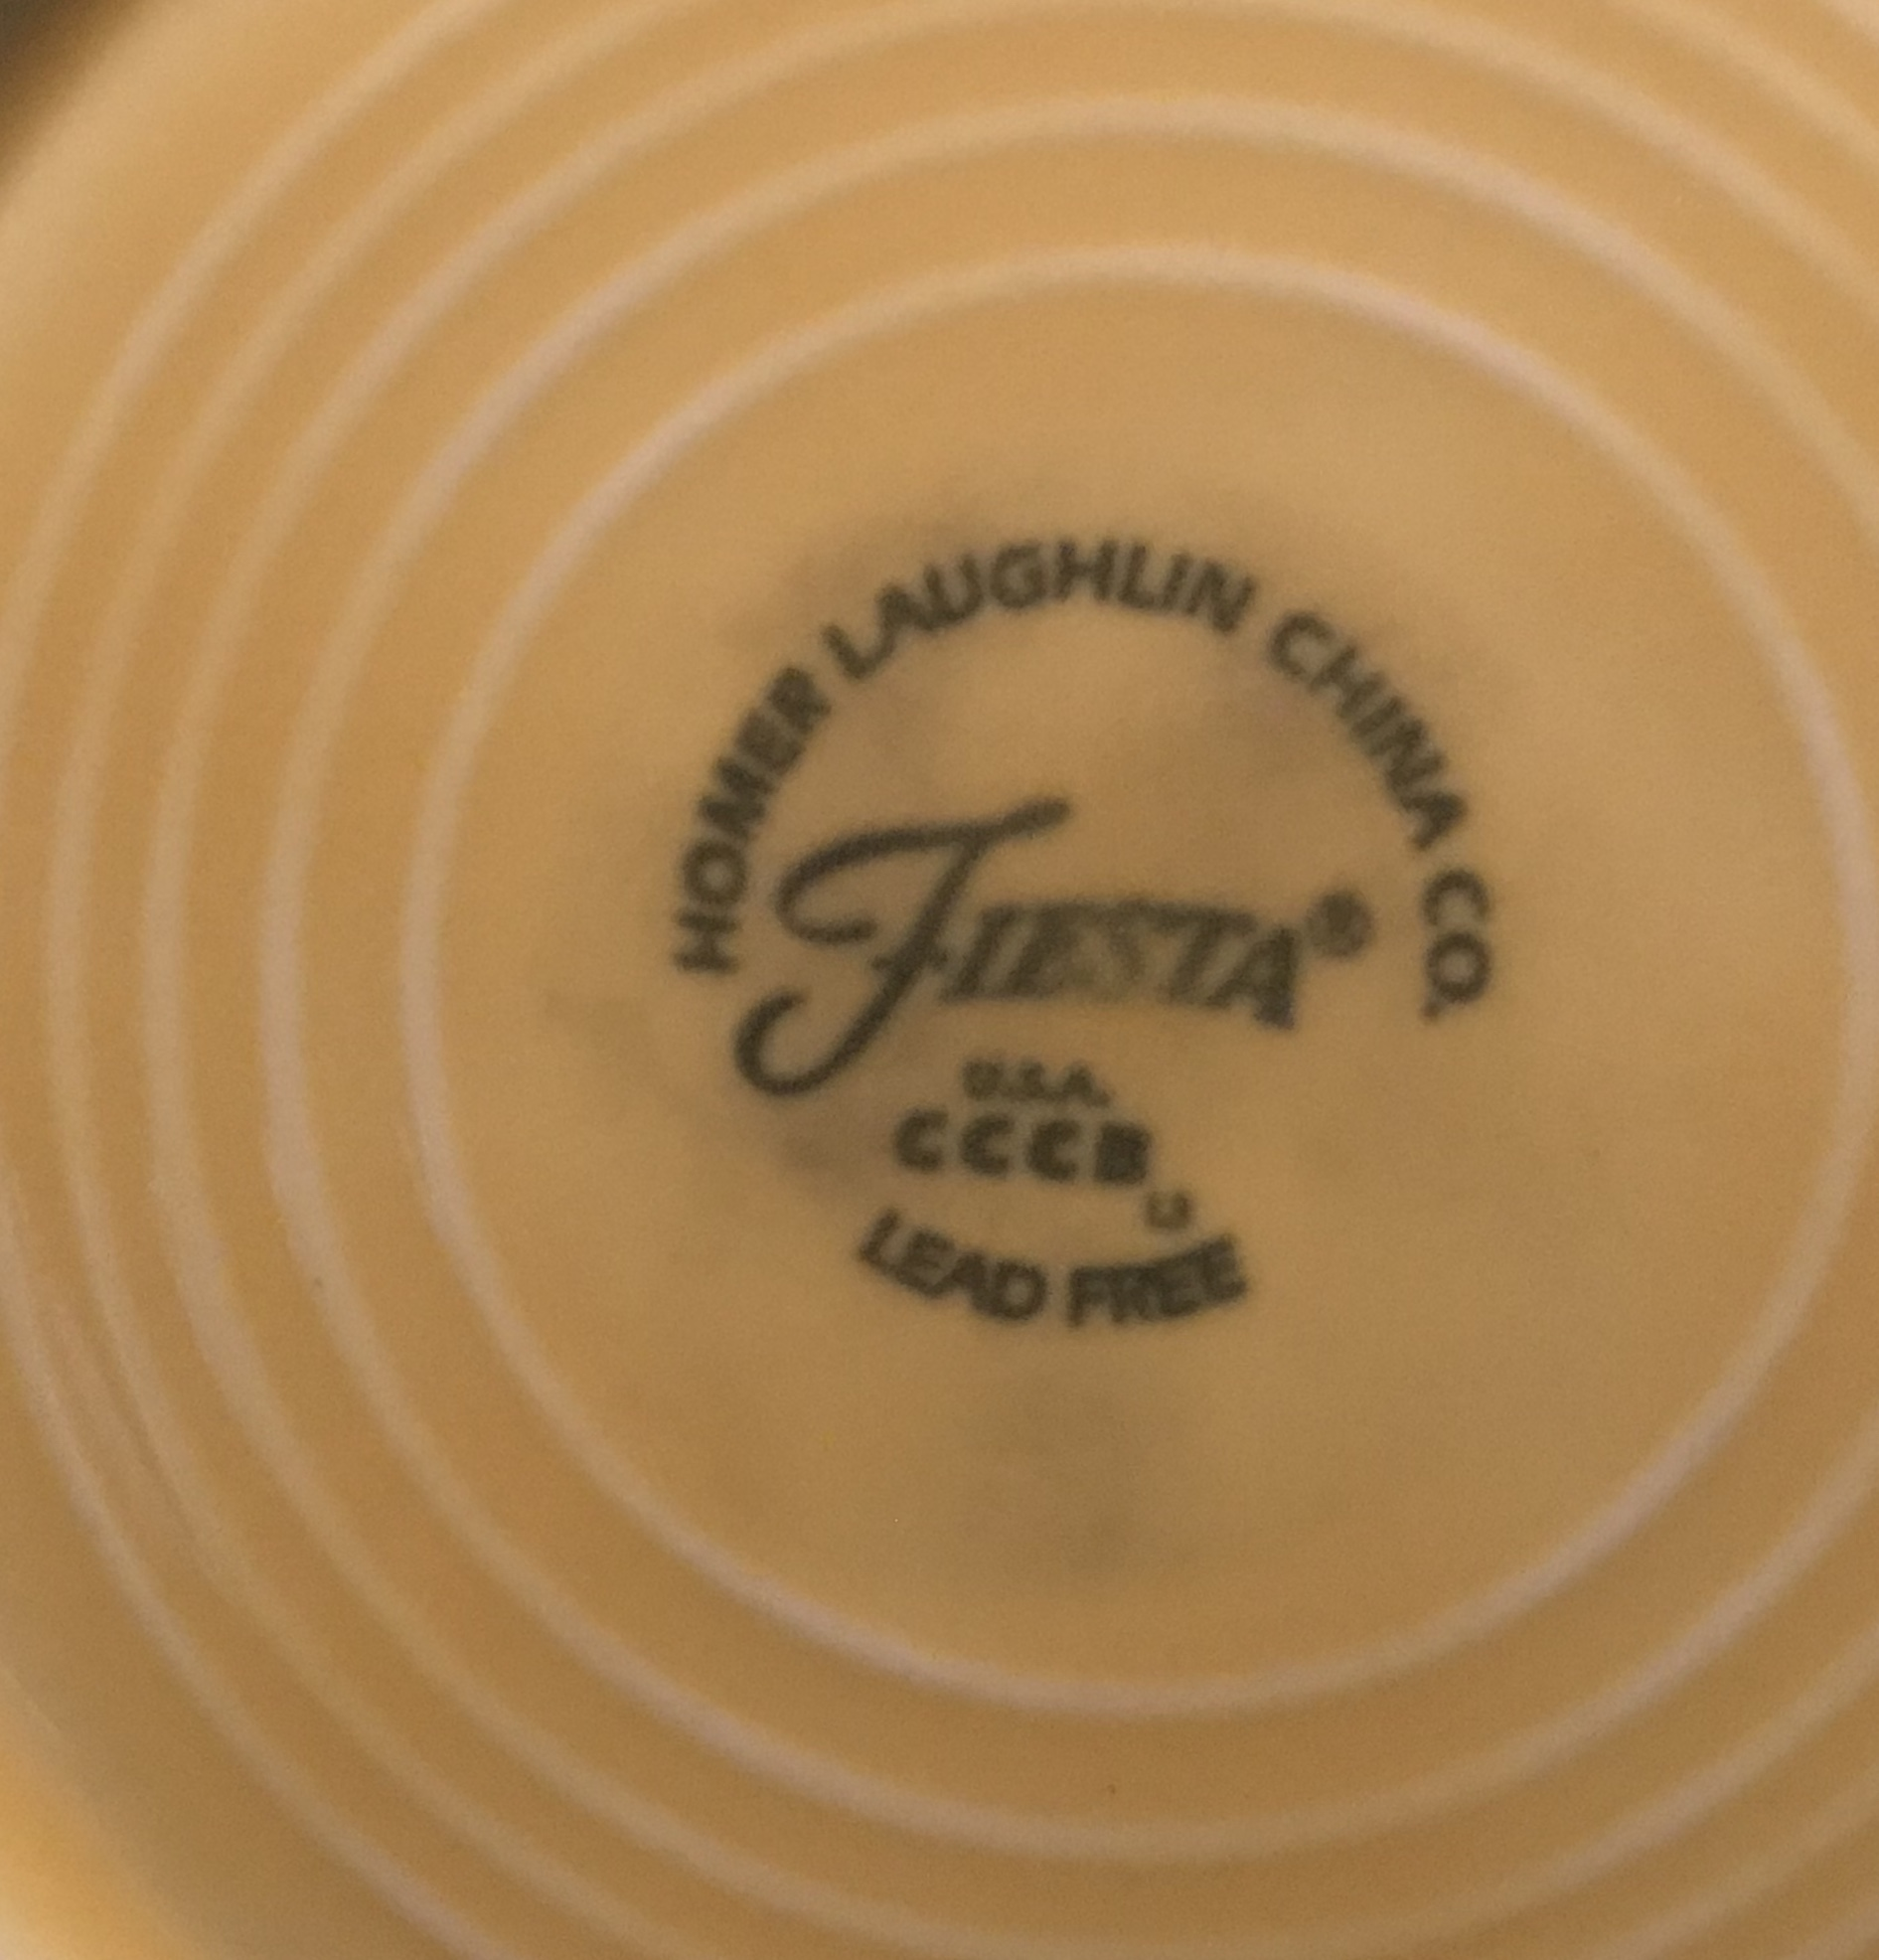 "Modern Yellow Fiesta Homer Laughlin China Company Small Plate. Marked ""Lead Free"". Non-Detect (negative) for Lead, Cadmium, Mercury and Arsenic!"